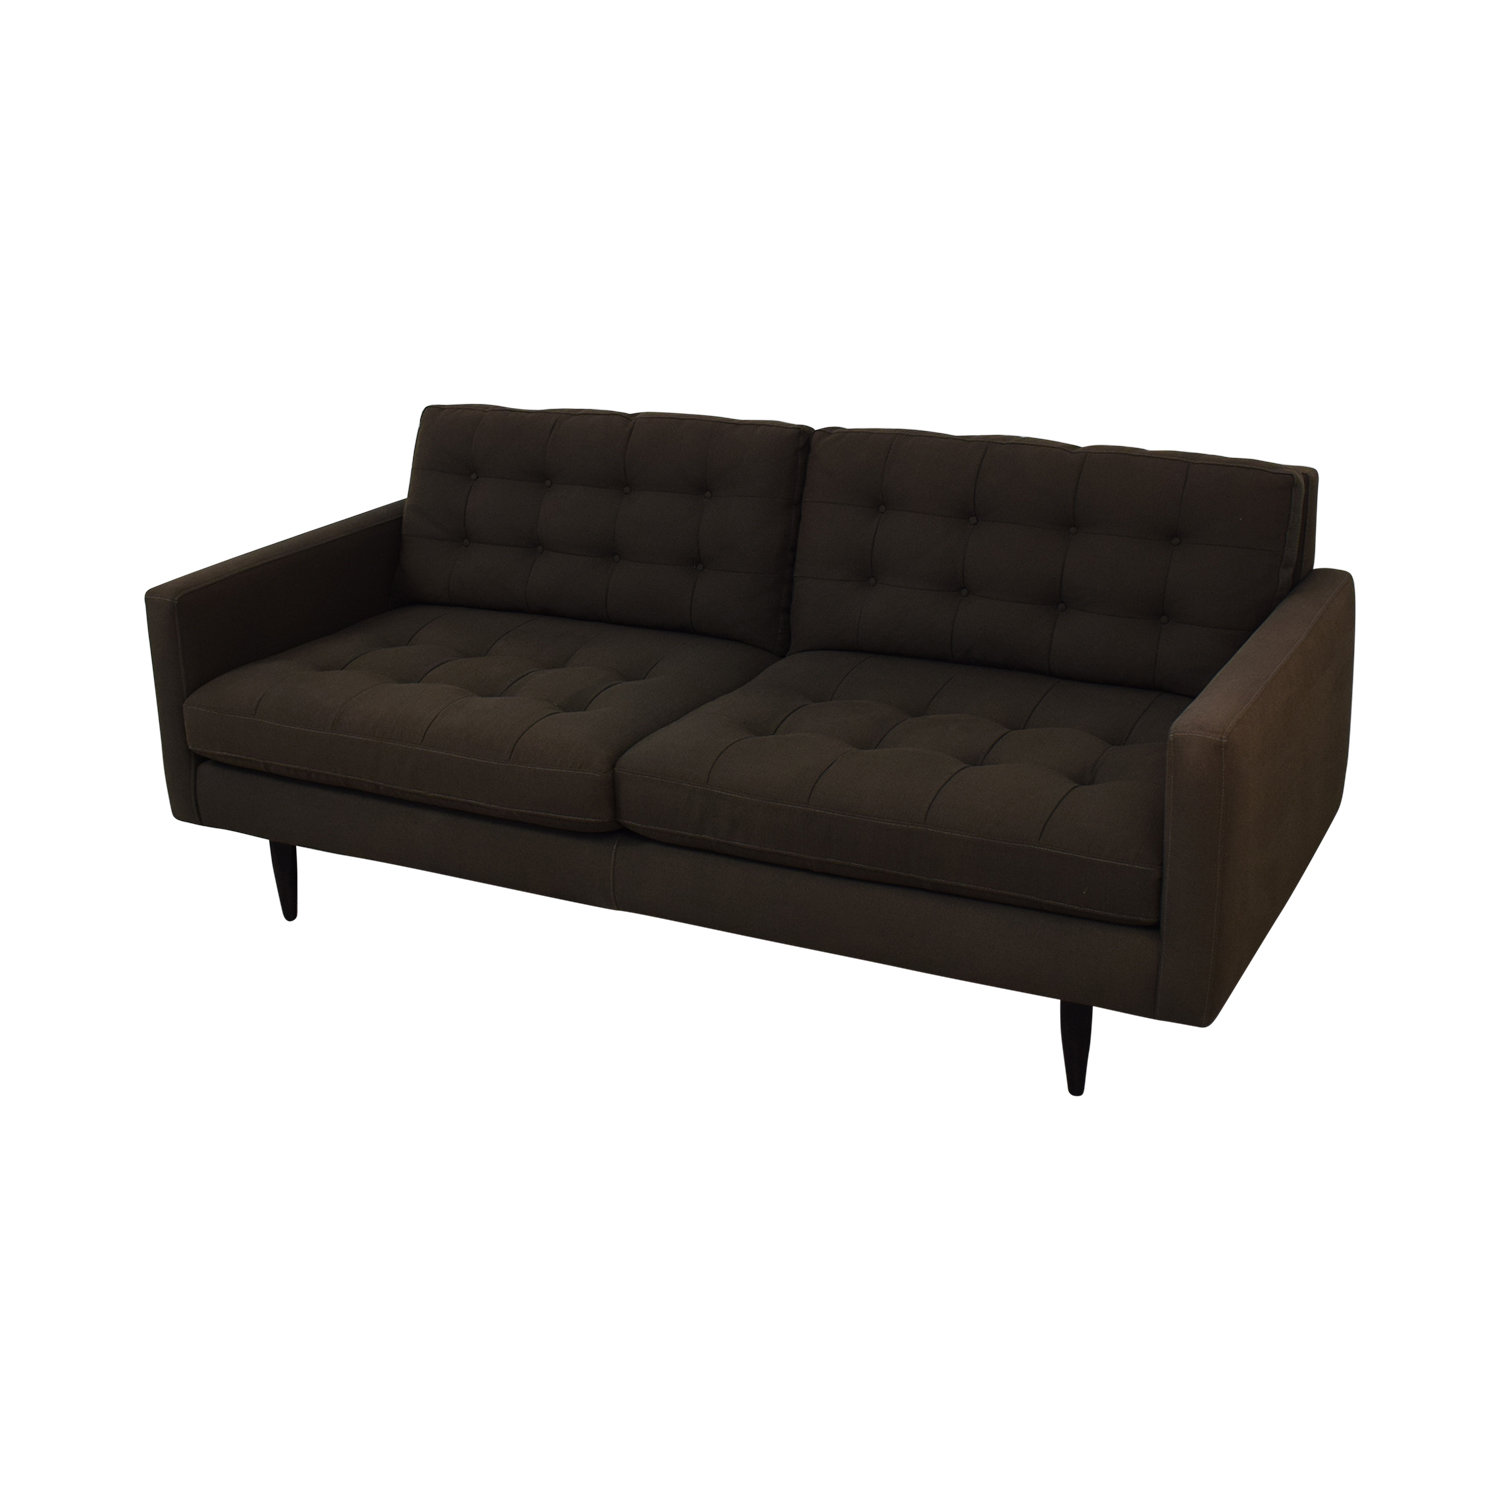 Crate & Barrel Crate & Barrel Petrie Midcentury Sofa dark gray